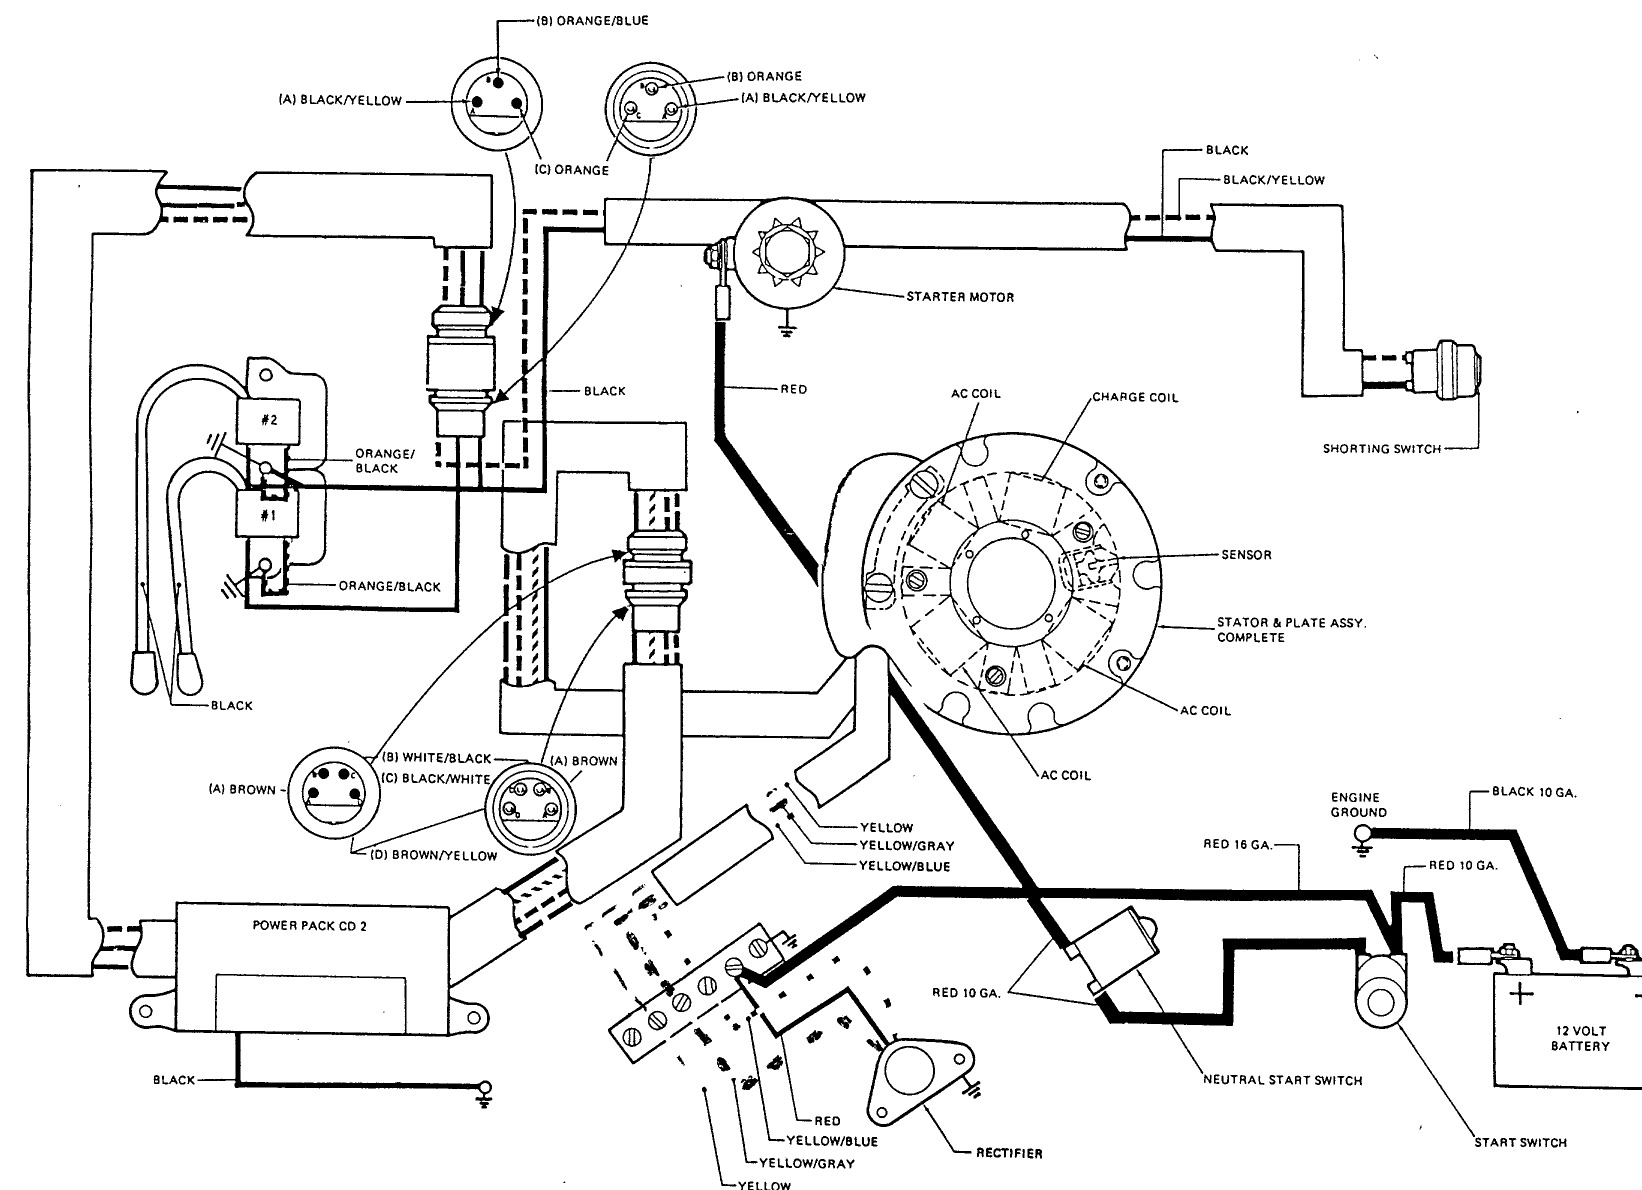 Maintaining Johnson 99 Troubleshooting 3 Phase Washer Motor Wiring Diagrams Electrical Diagram For Electric Starter